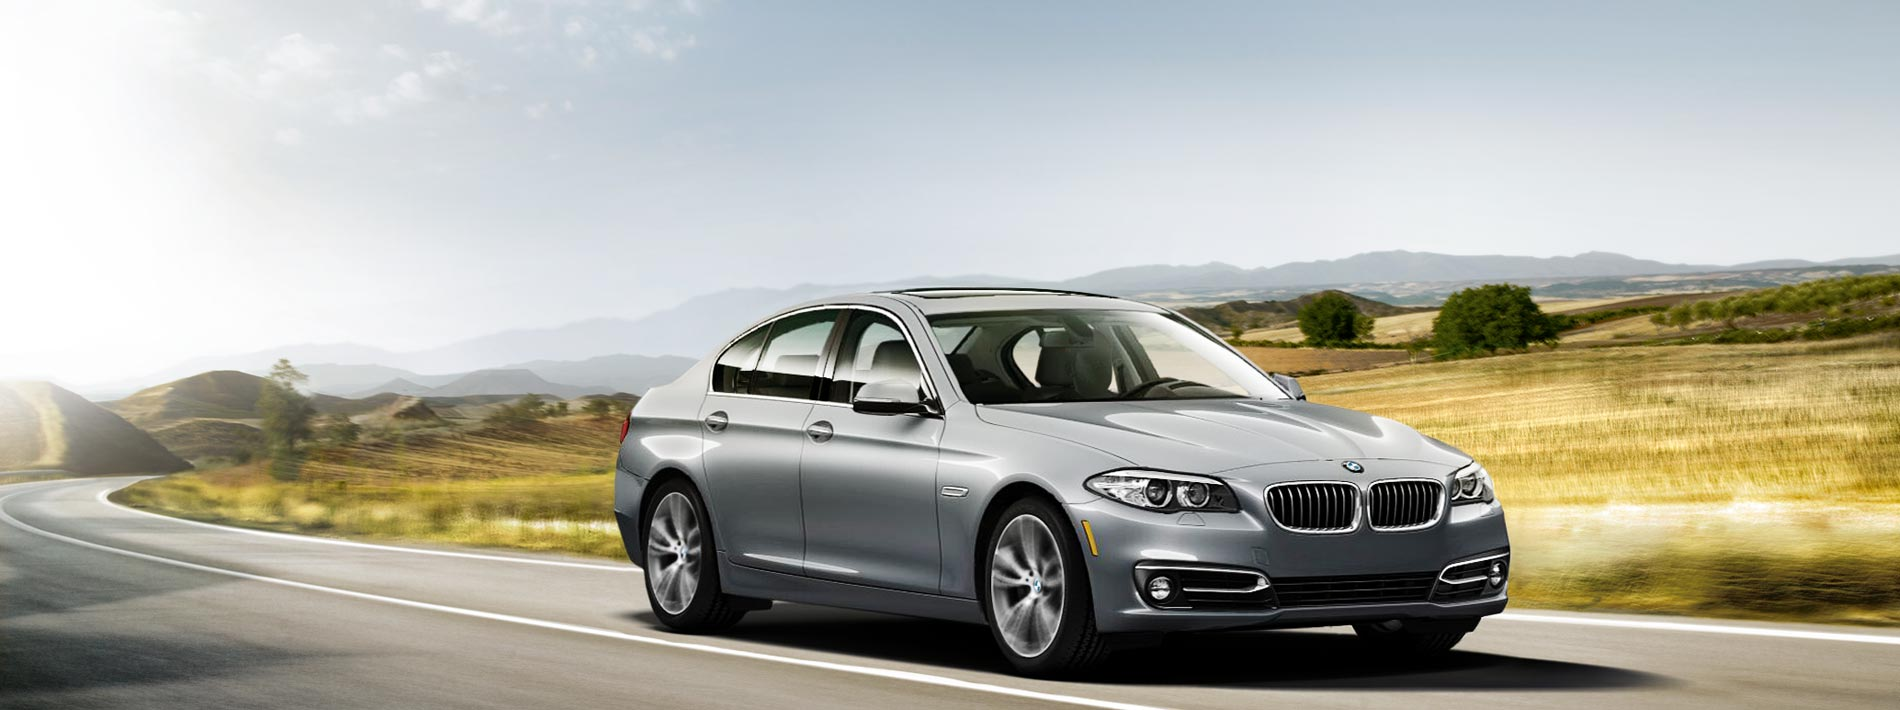 New Bmw 5 Series Lease And Finance Offers In Cincinnati Oh